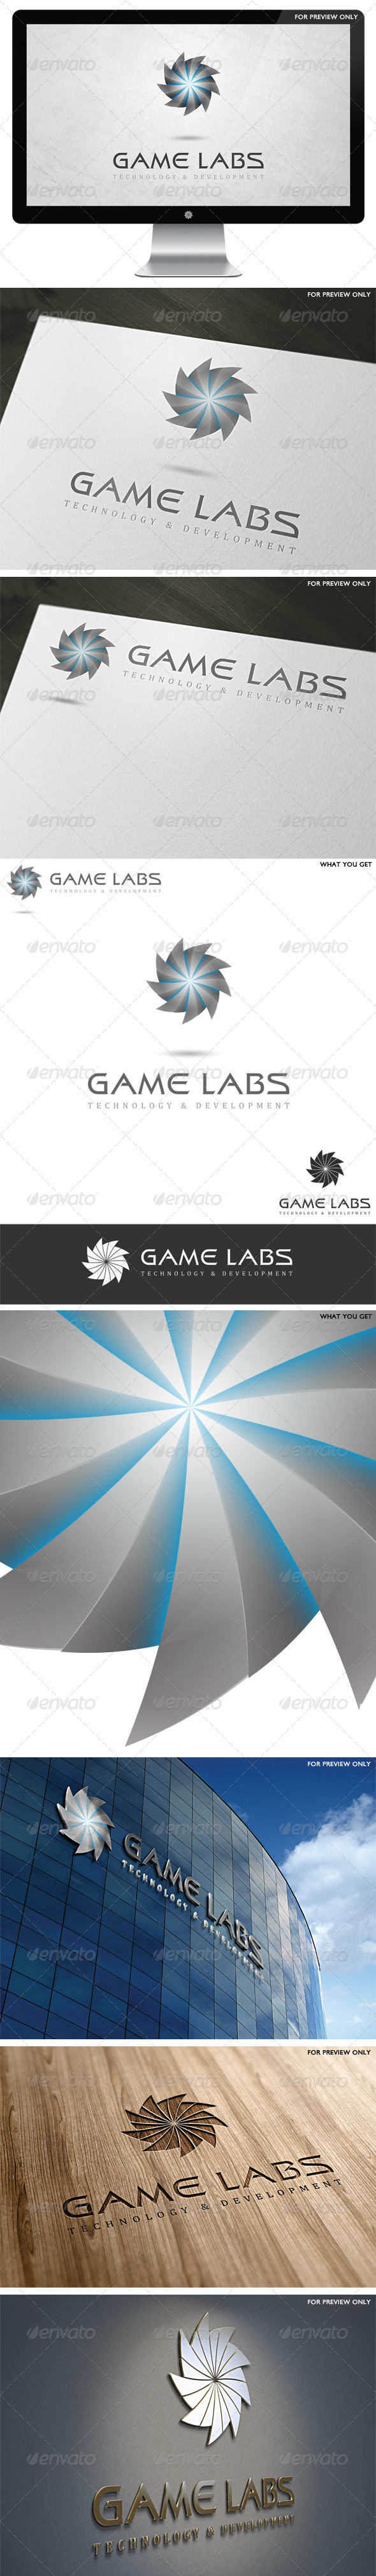 3D Game Labs Logo Template v1 - 3d Abstract